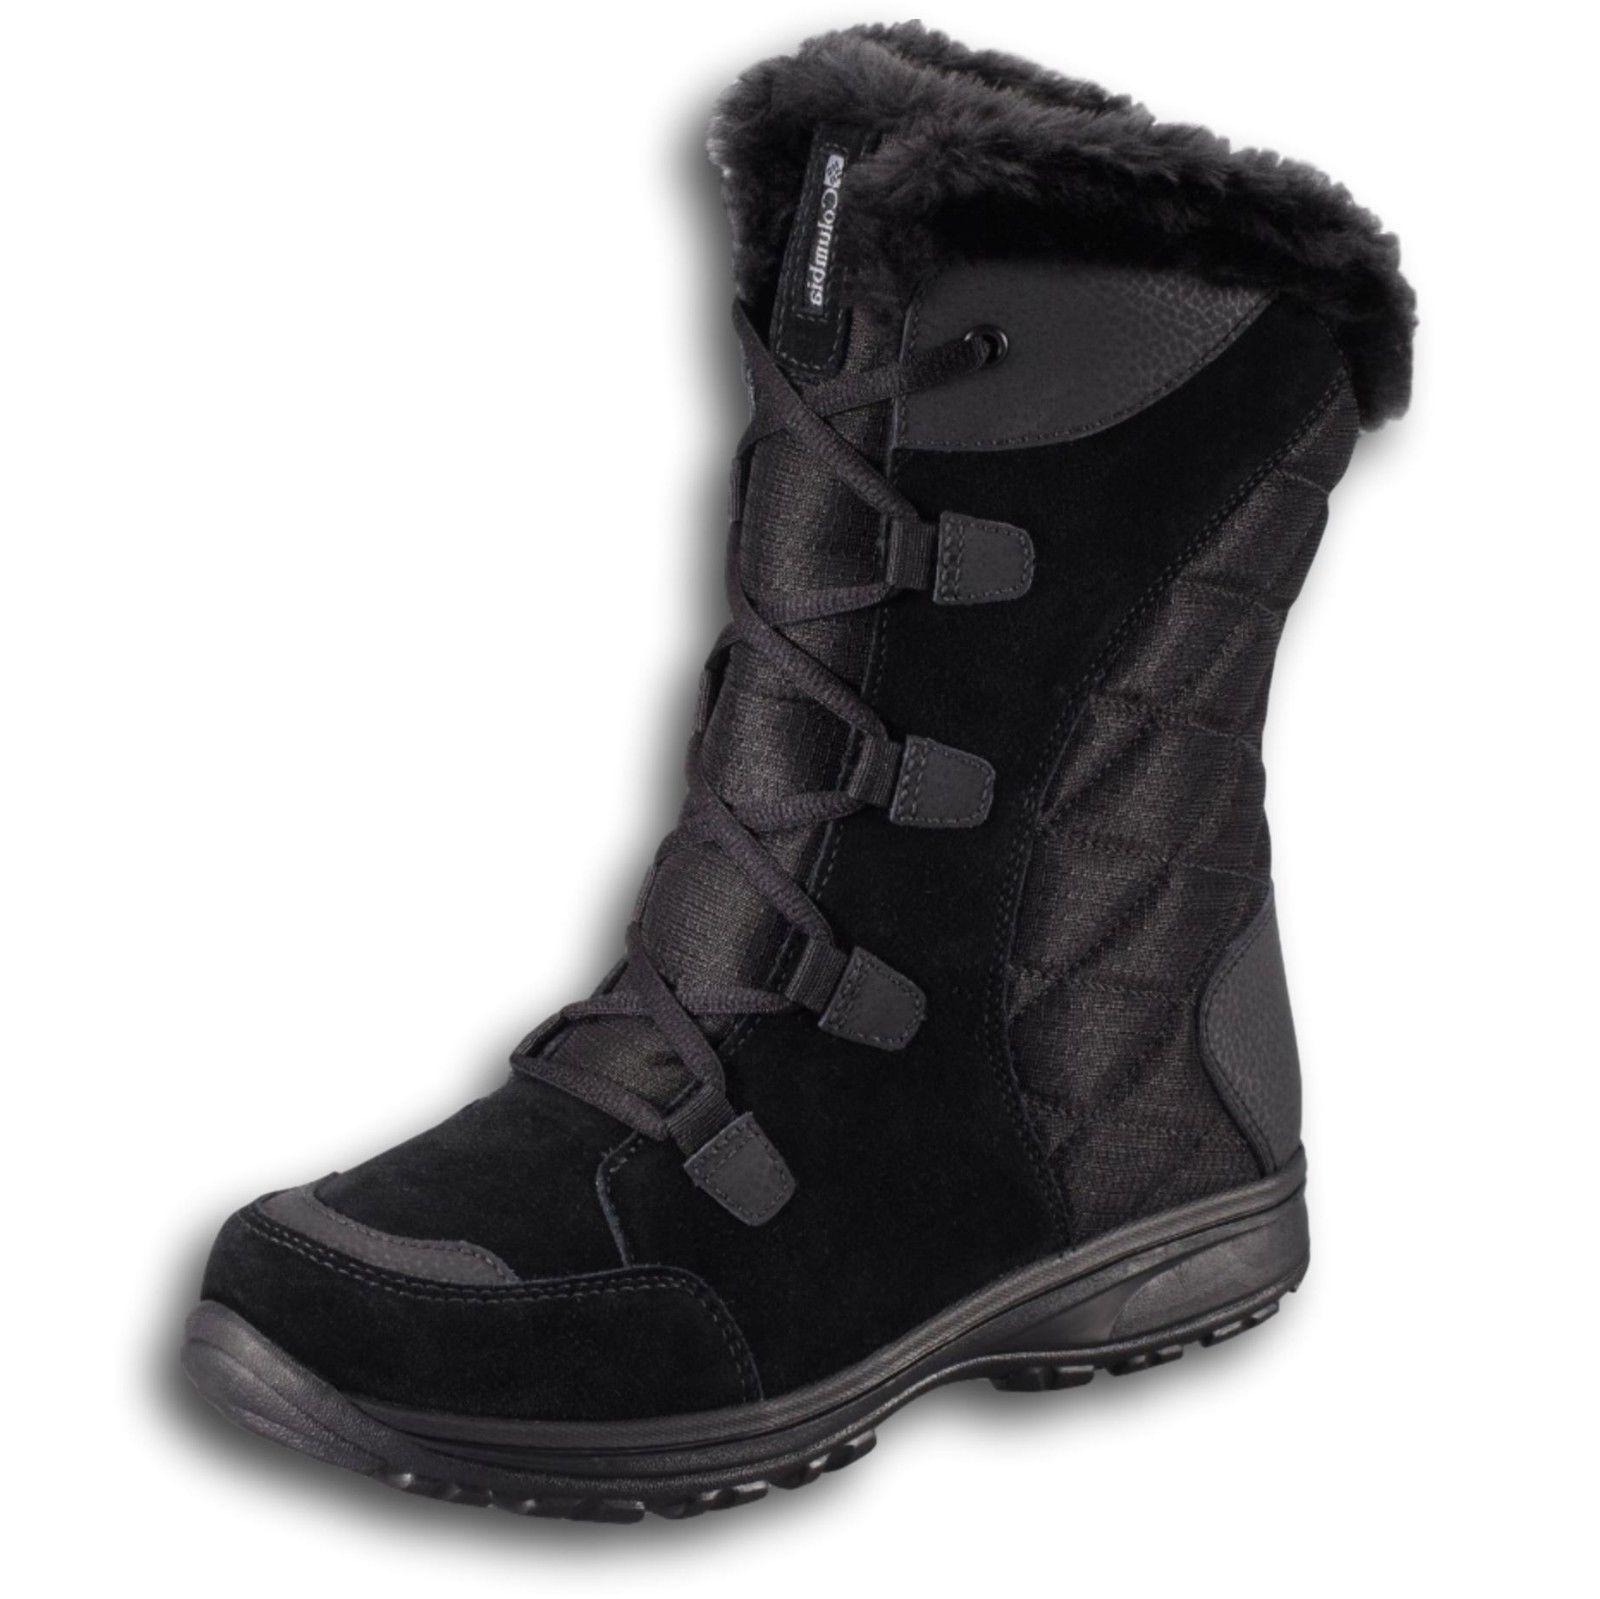 new womens icefall waterproof lace up leather